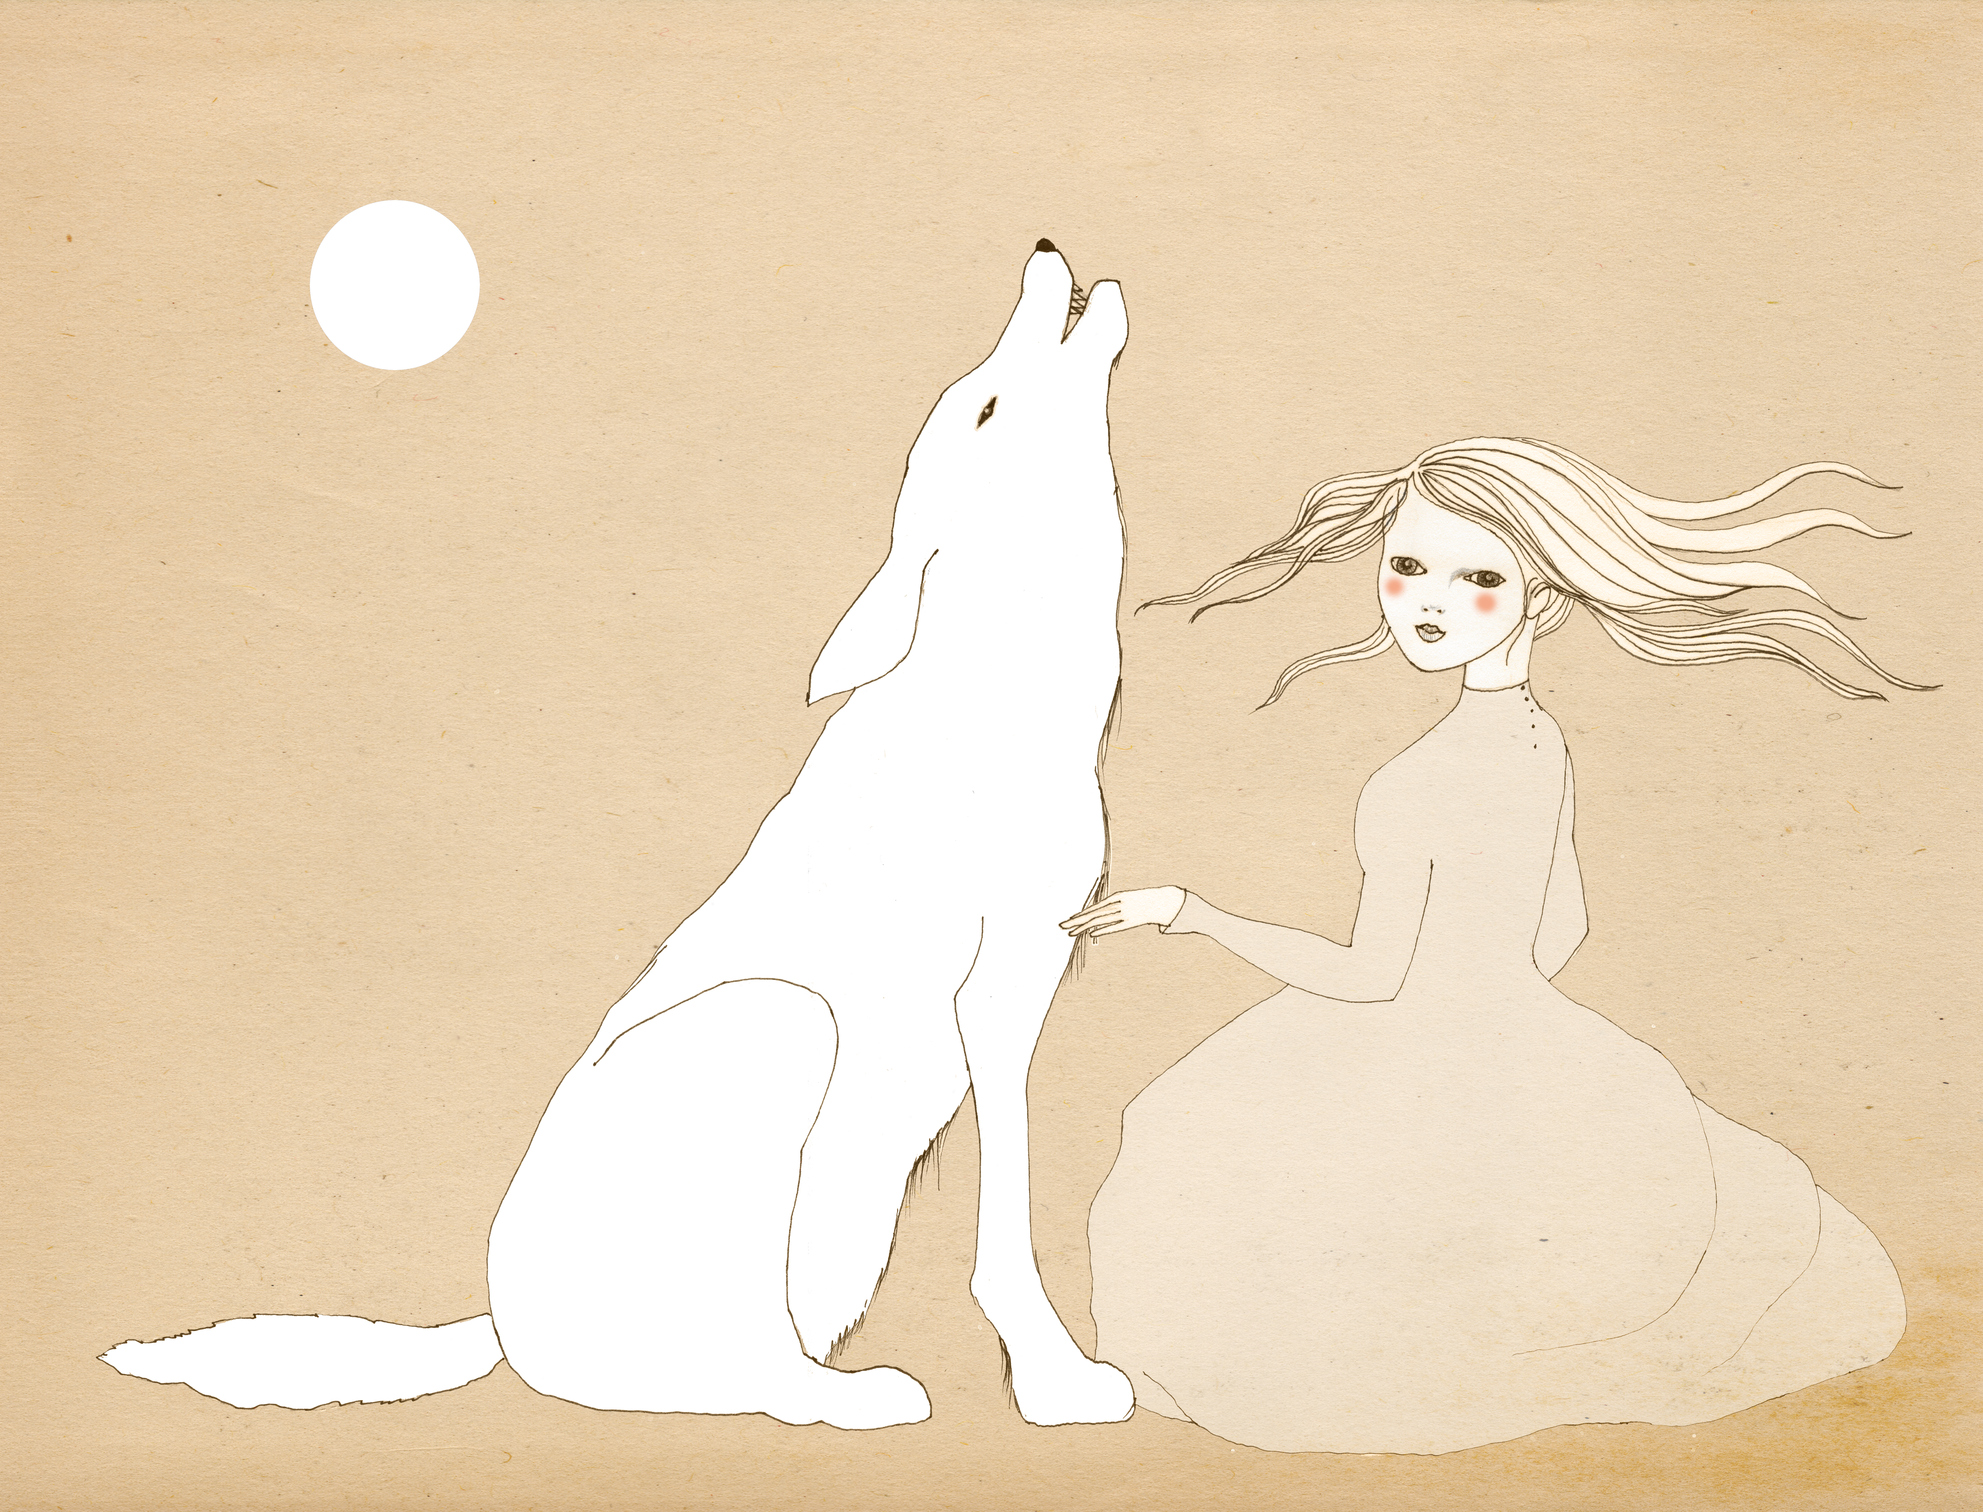 A young girl with a gray wolf howling at the full moon